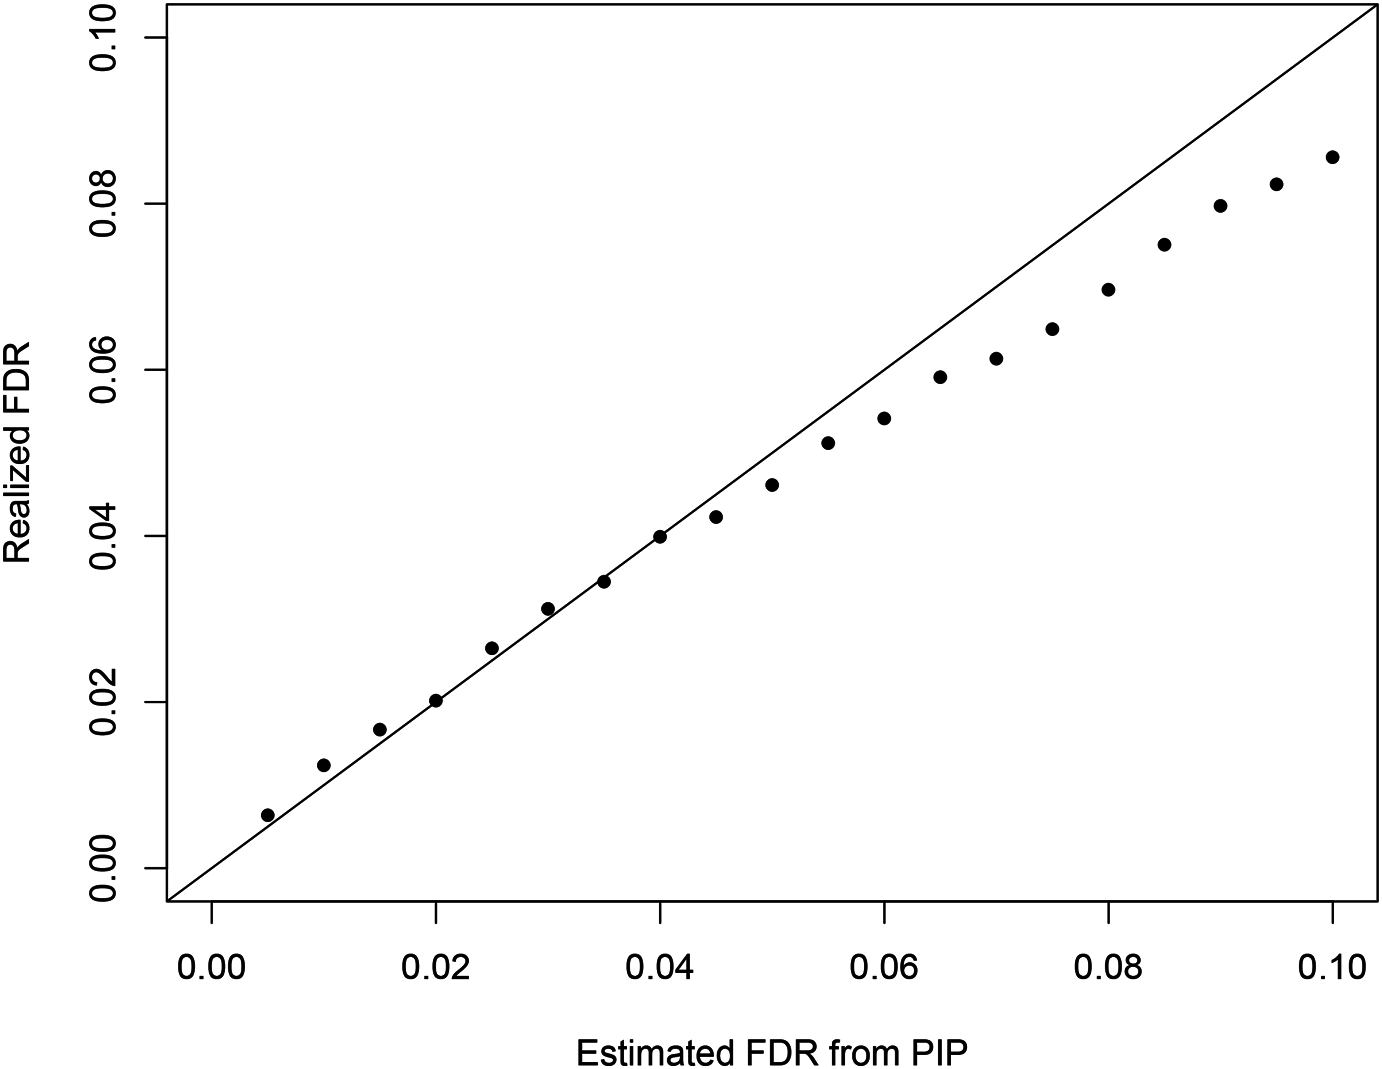 The comparison between the realized falase discovery rate and the estimated false discovery rate using the PIPs from the proposed Bayesian method in the simulation study.